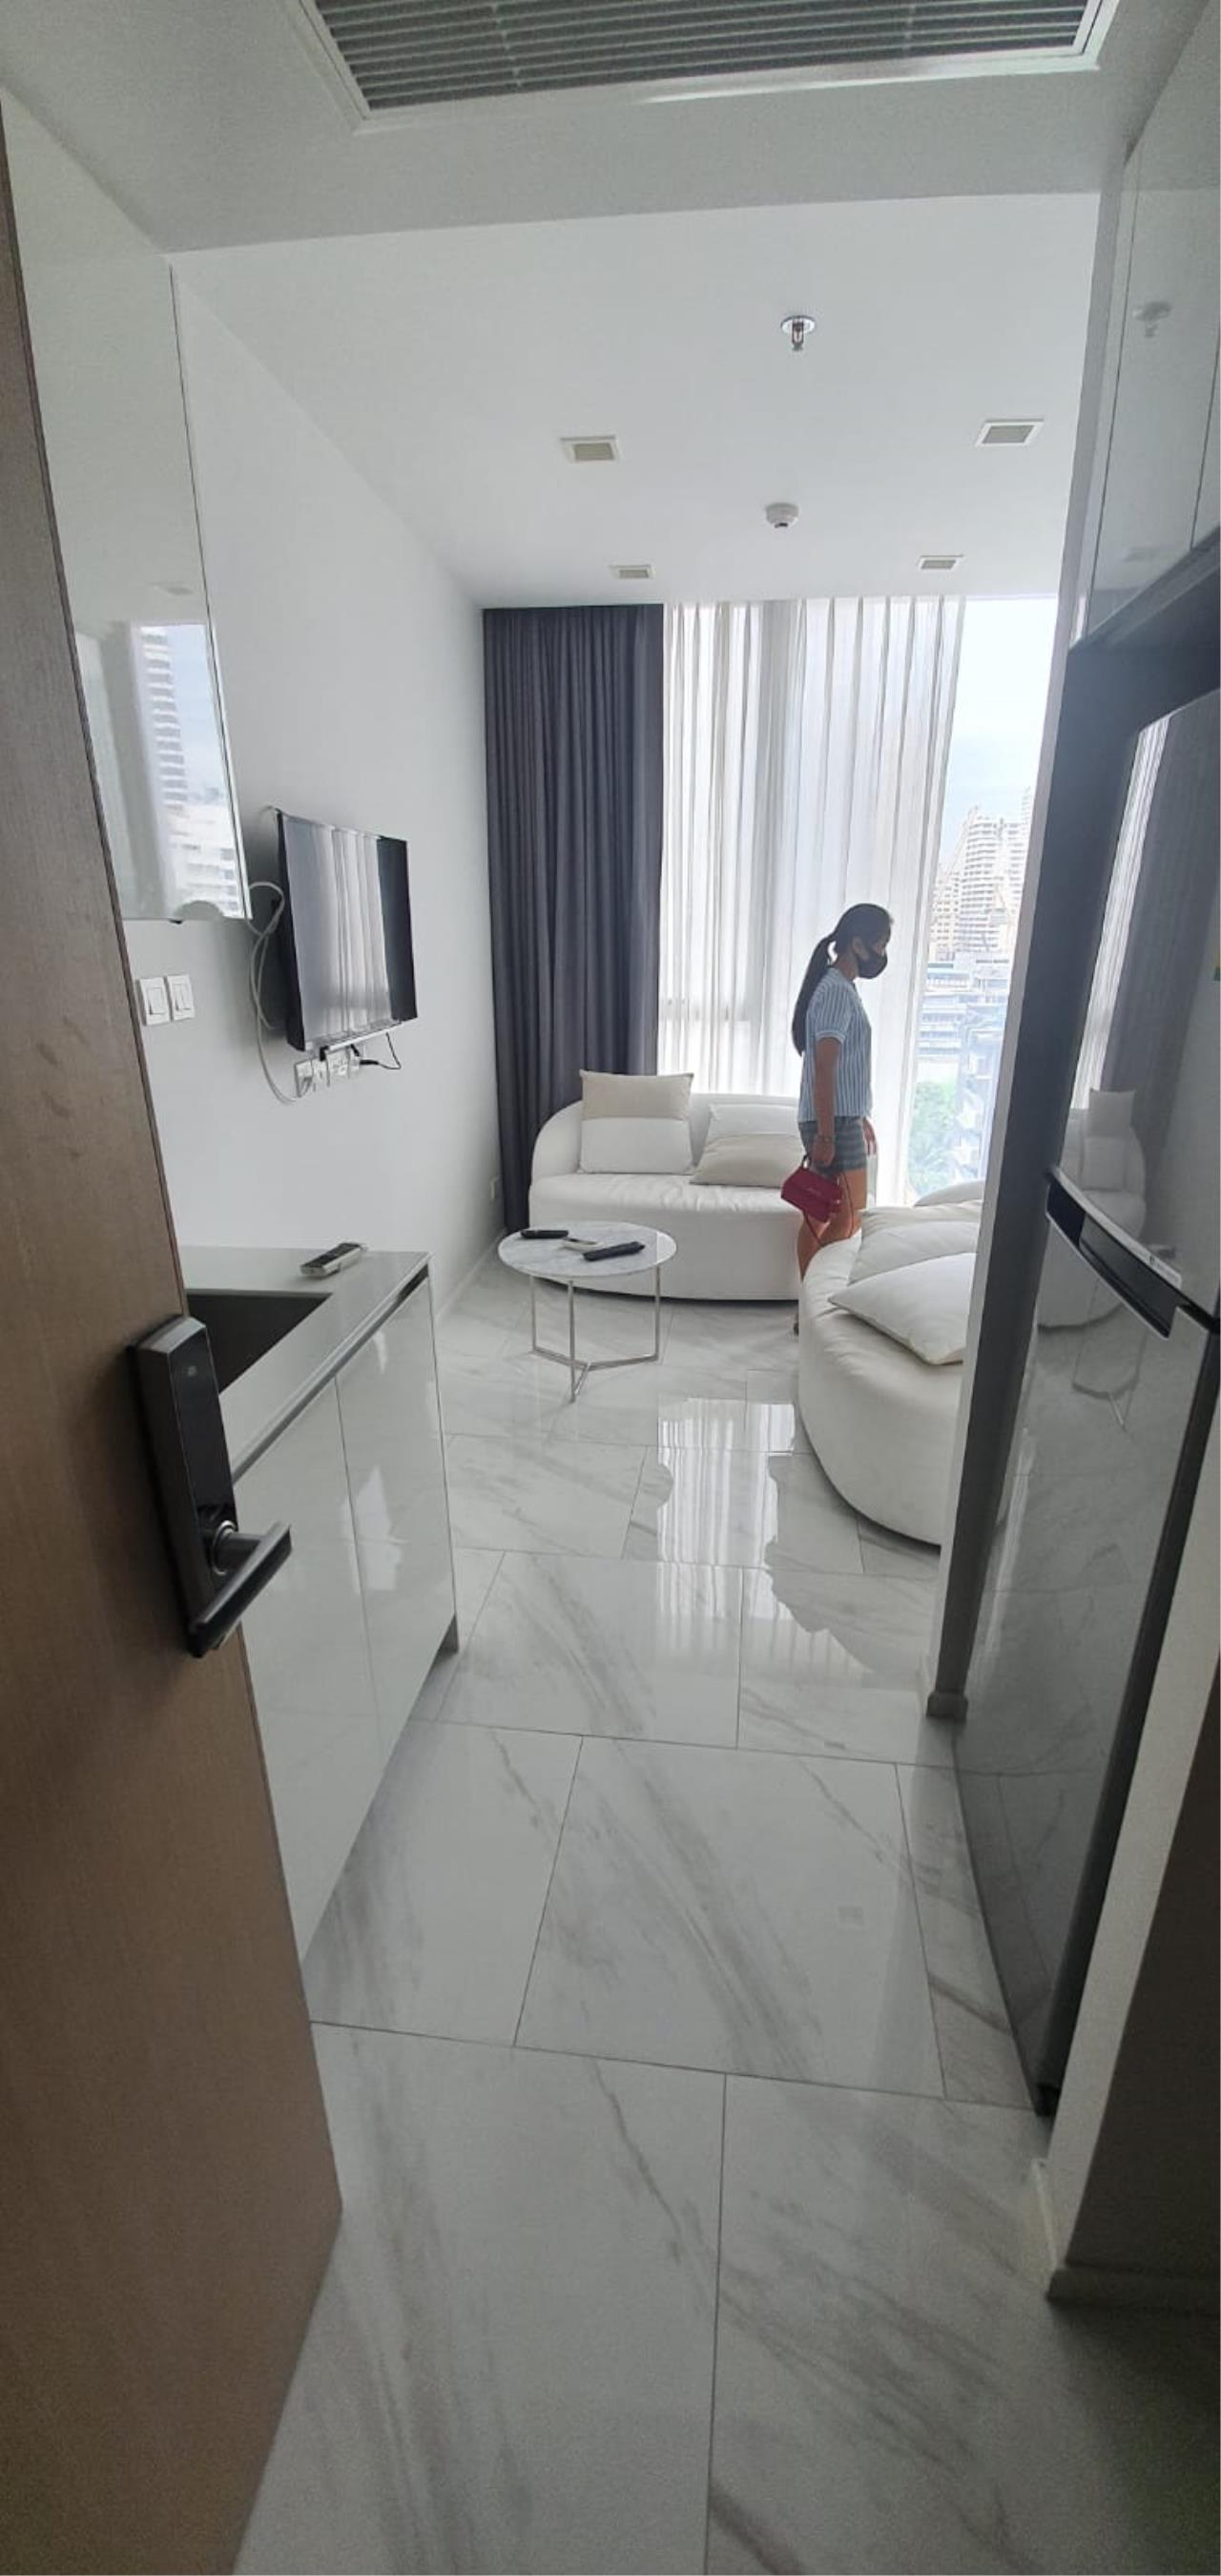 Bestbkkcondos Agency's Hyde 11 - 35 Sqm - for rent: 18000THB/MONTH - 1 bedroom, 1 bathroom 1